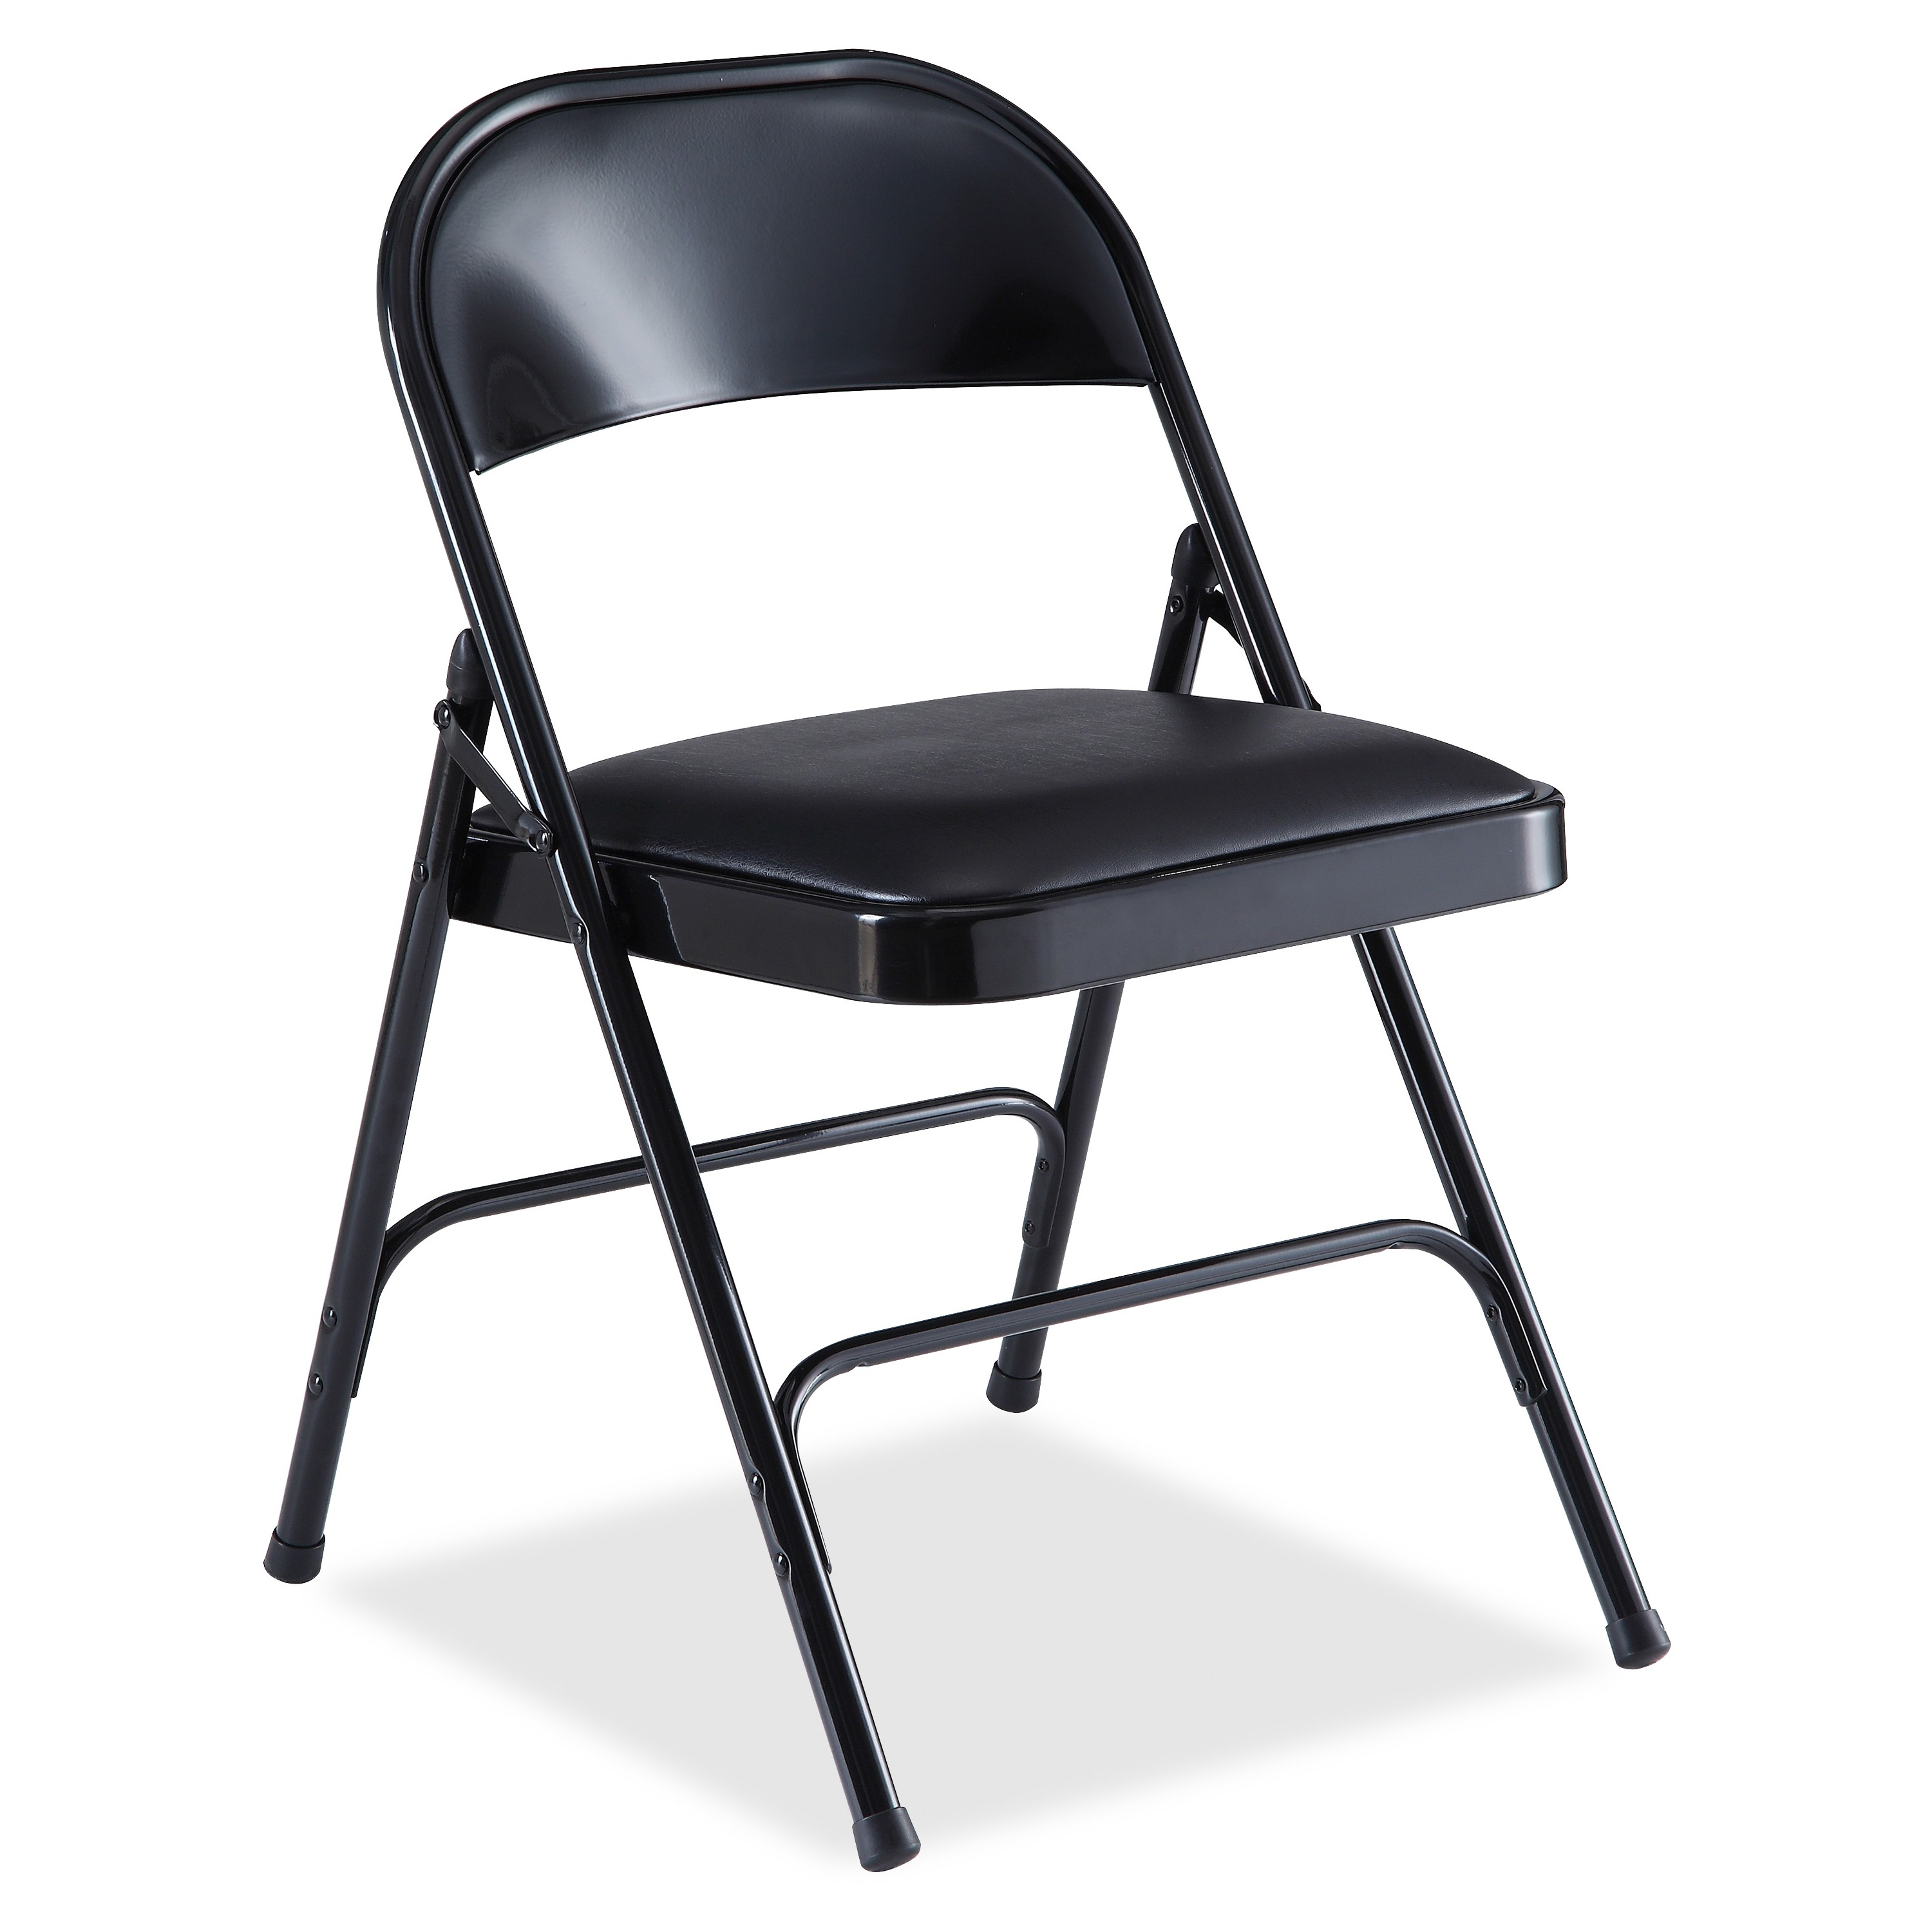 Steel Folding Chair Buy Rite Business Furnishings